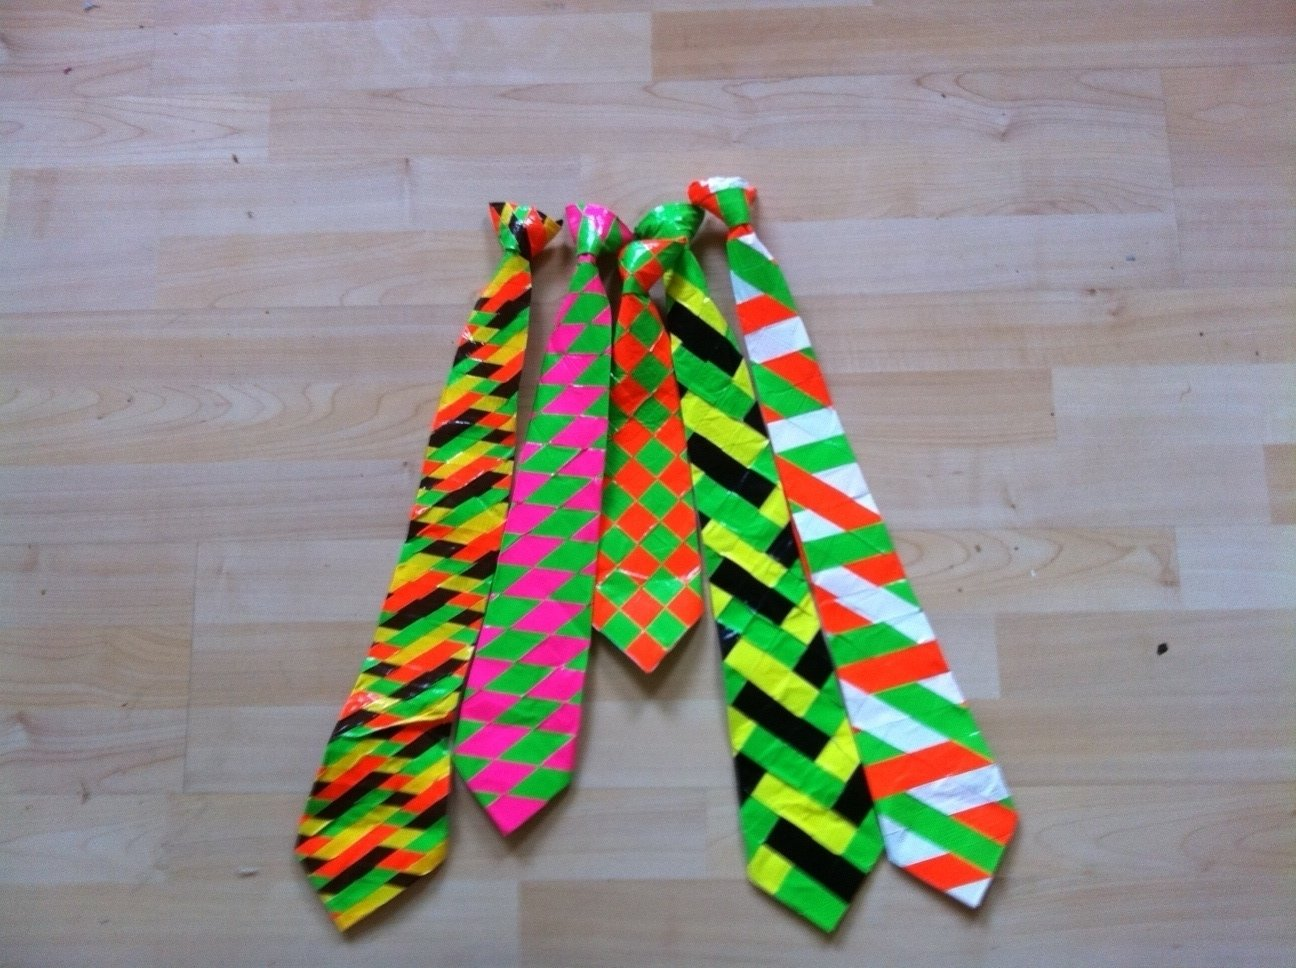 10 Spectacular Duct Tape Ideas For Kids duct tape crafts for boys duct tape crafts 2020